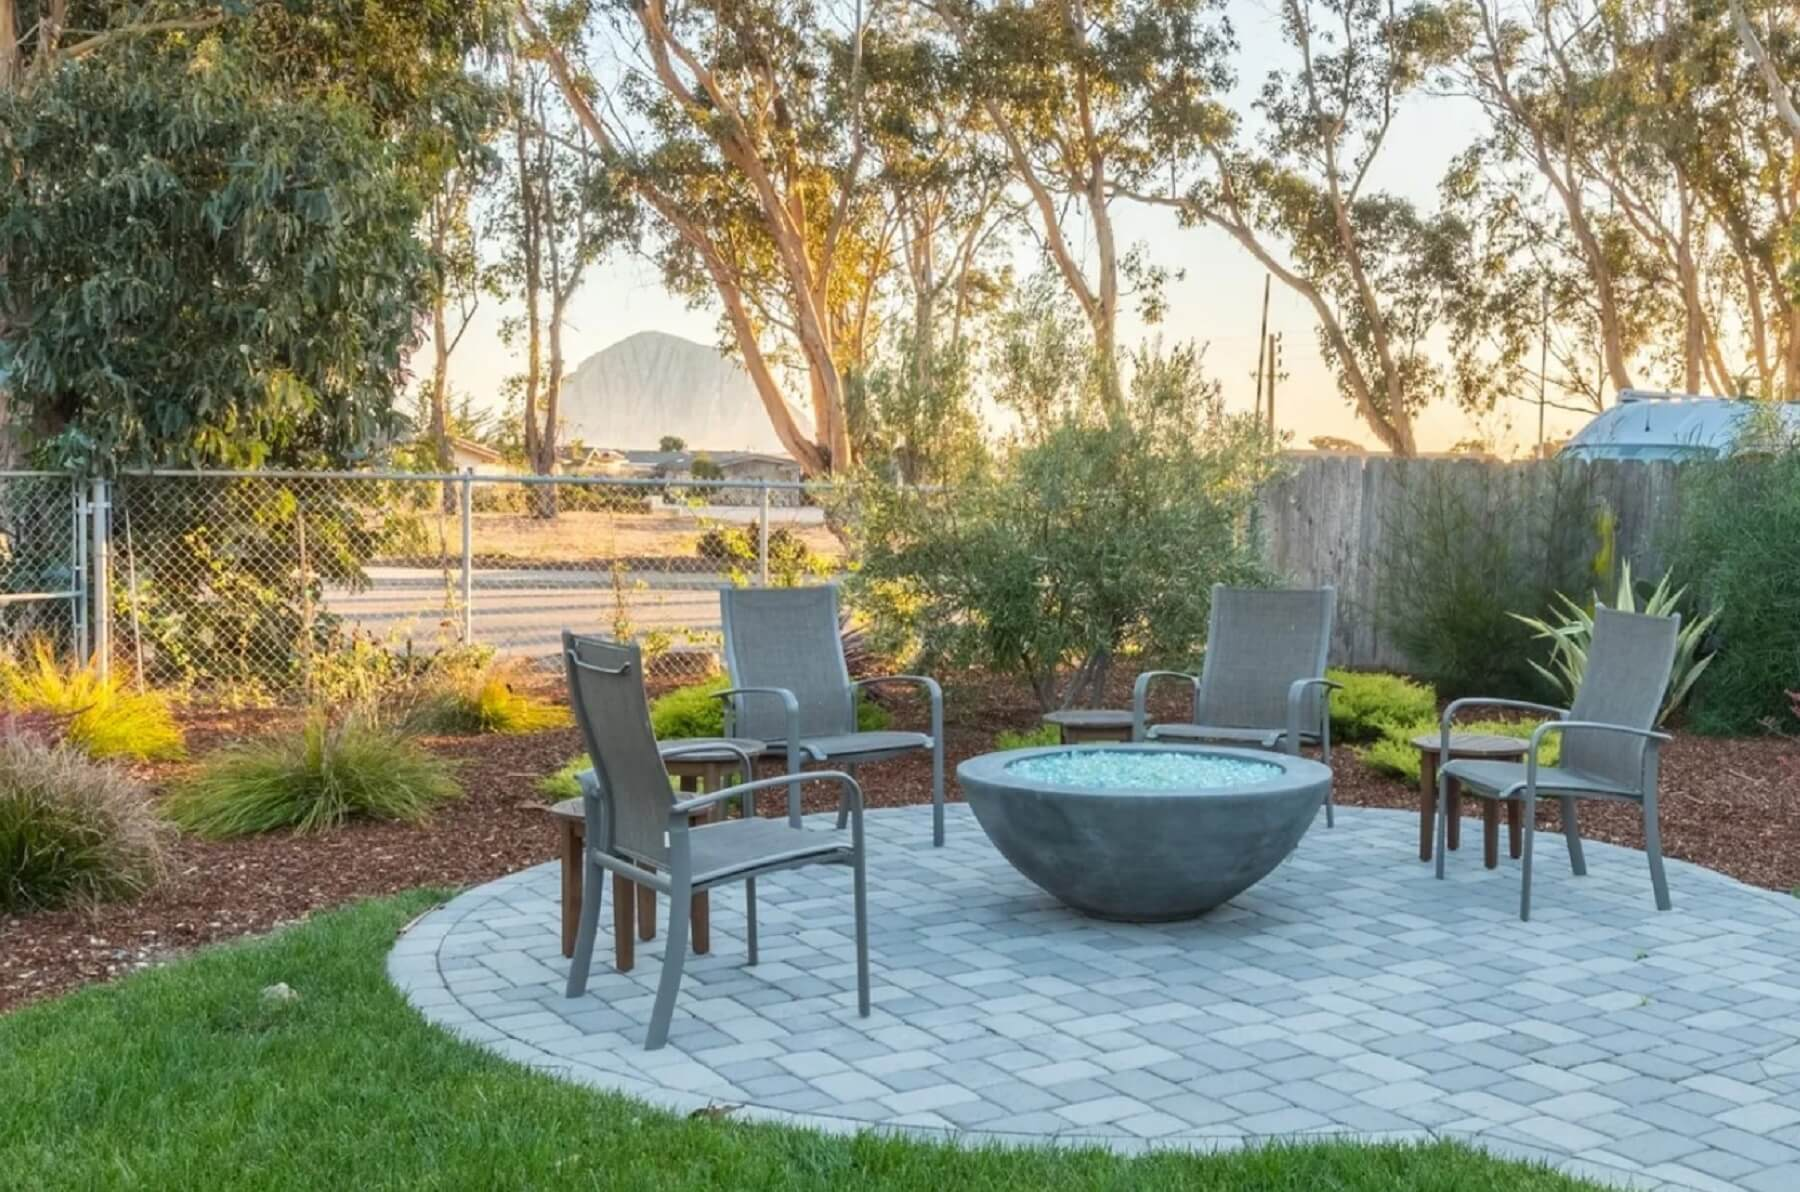 Morro Bay Rock Revival - Exterior - Fire Pit with seating and Morro Rock view